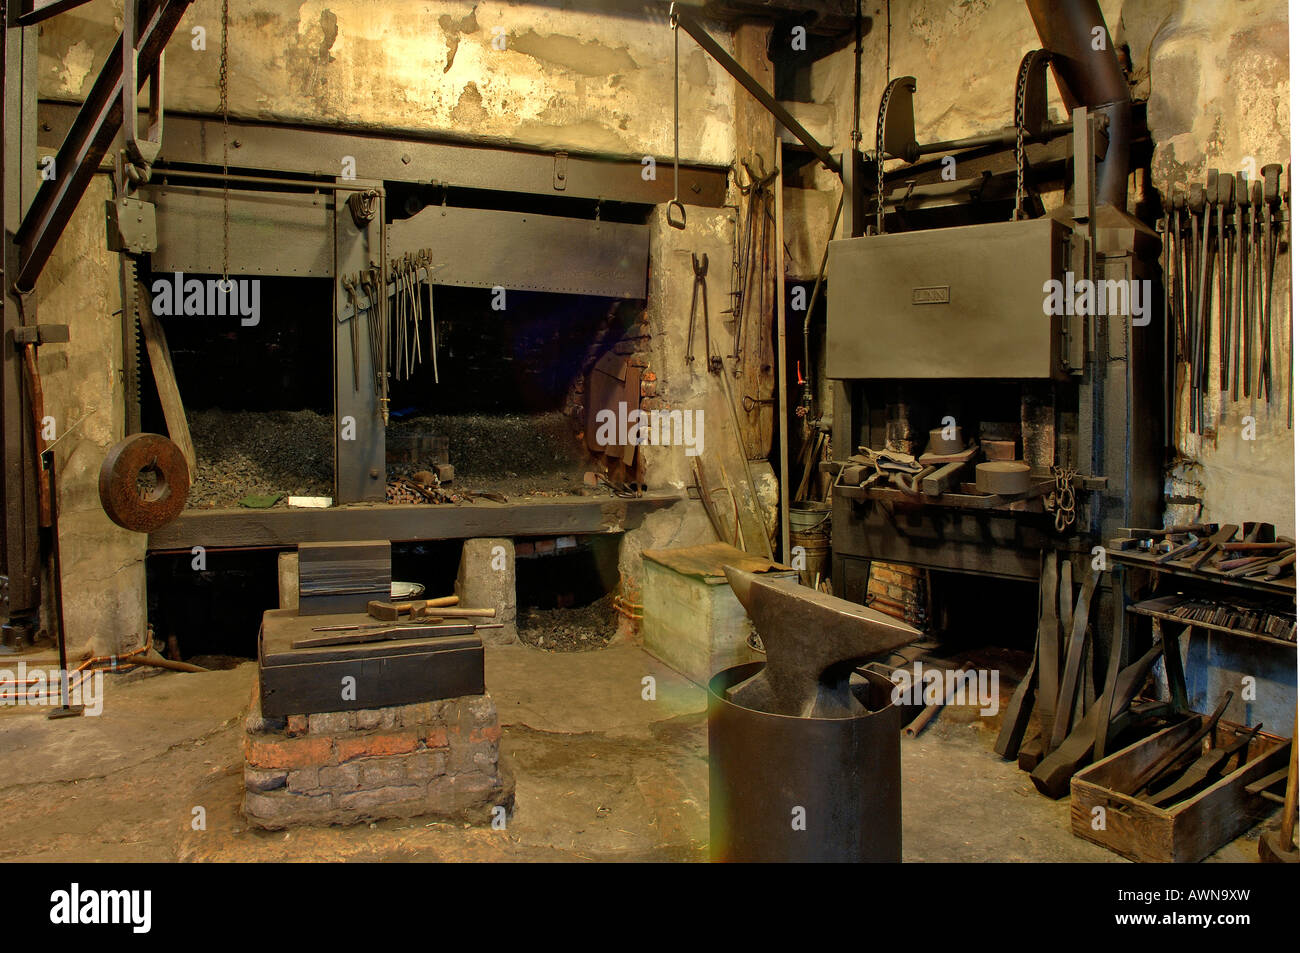 Forge, 1920s blacksmith's shop, Industriemuseum, Lauf an der Peignitz, Middle Franconia, Bavaria, Germany, Europe - Stock Image